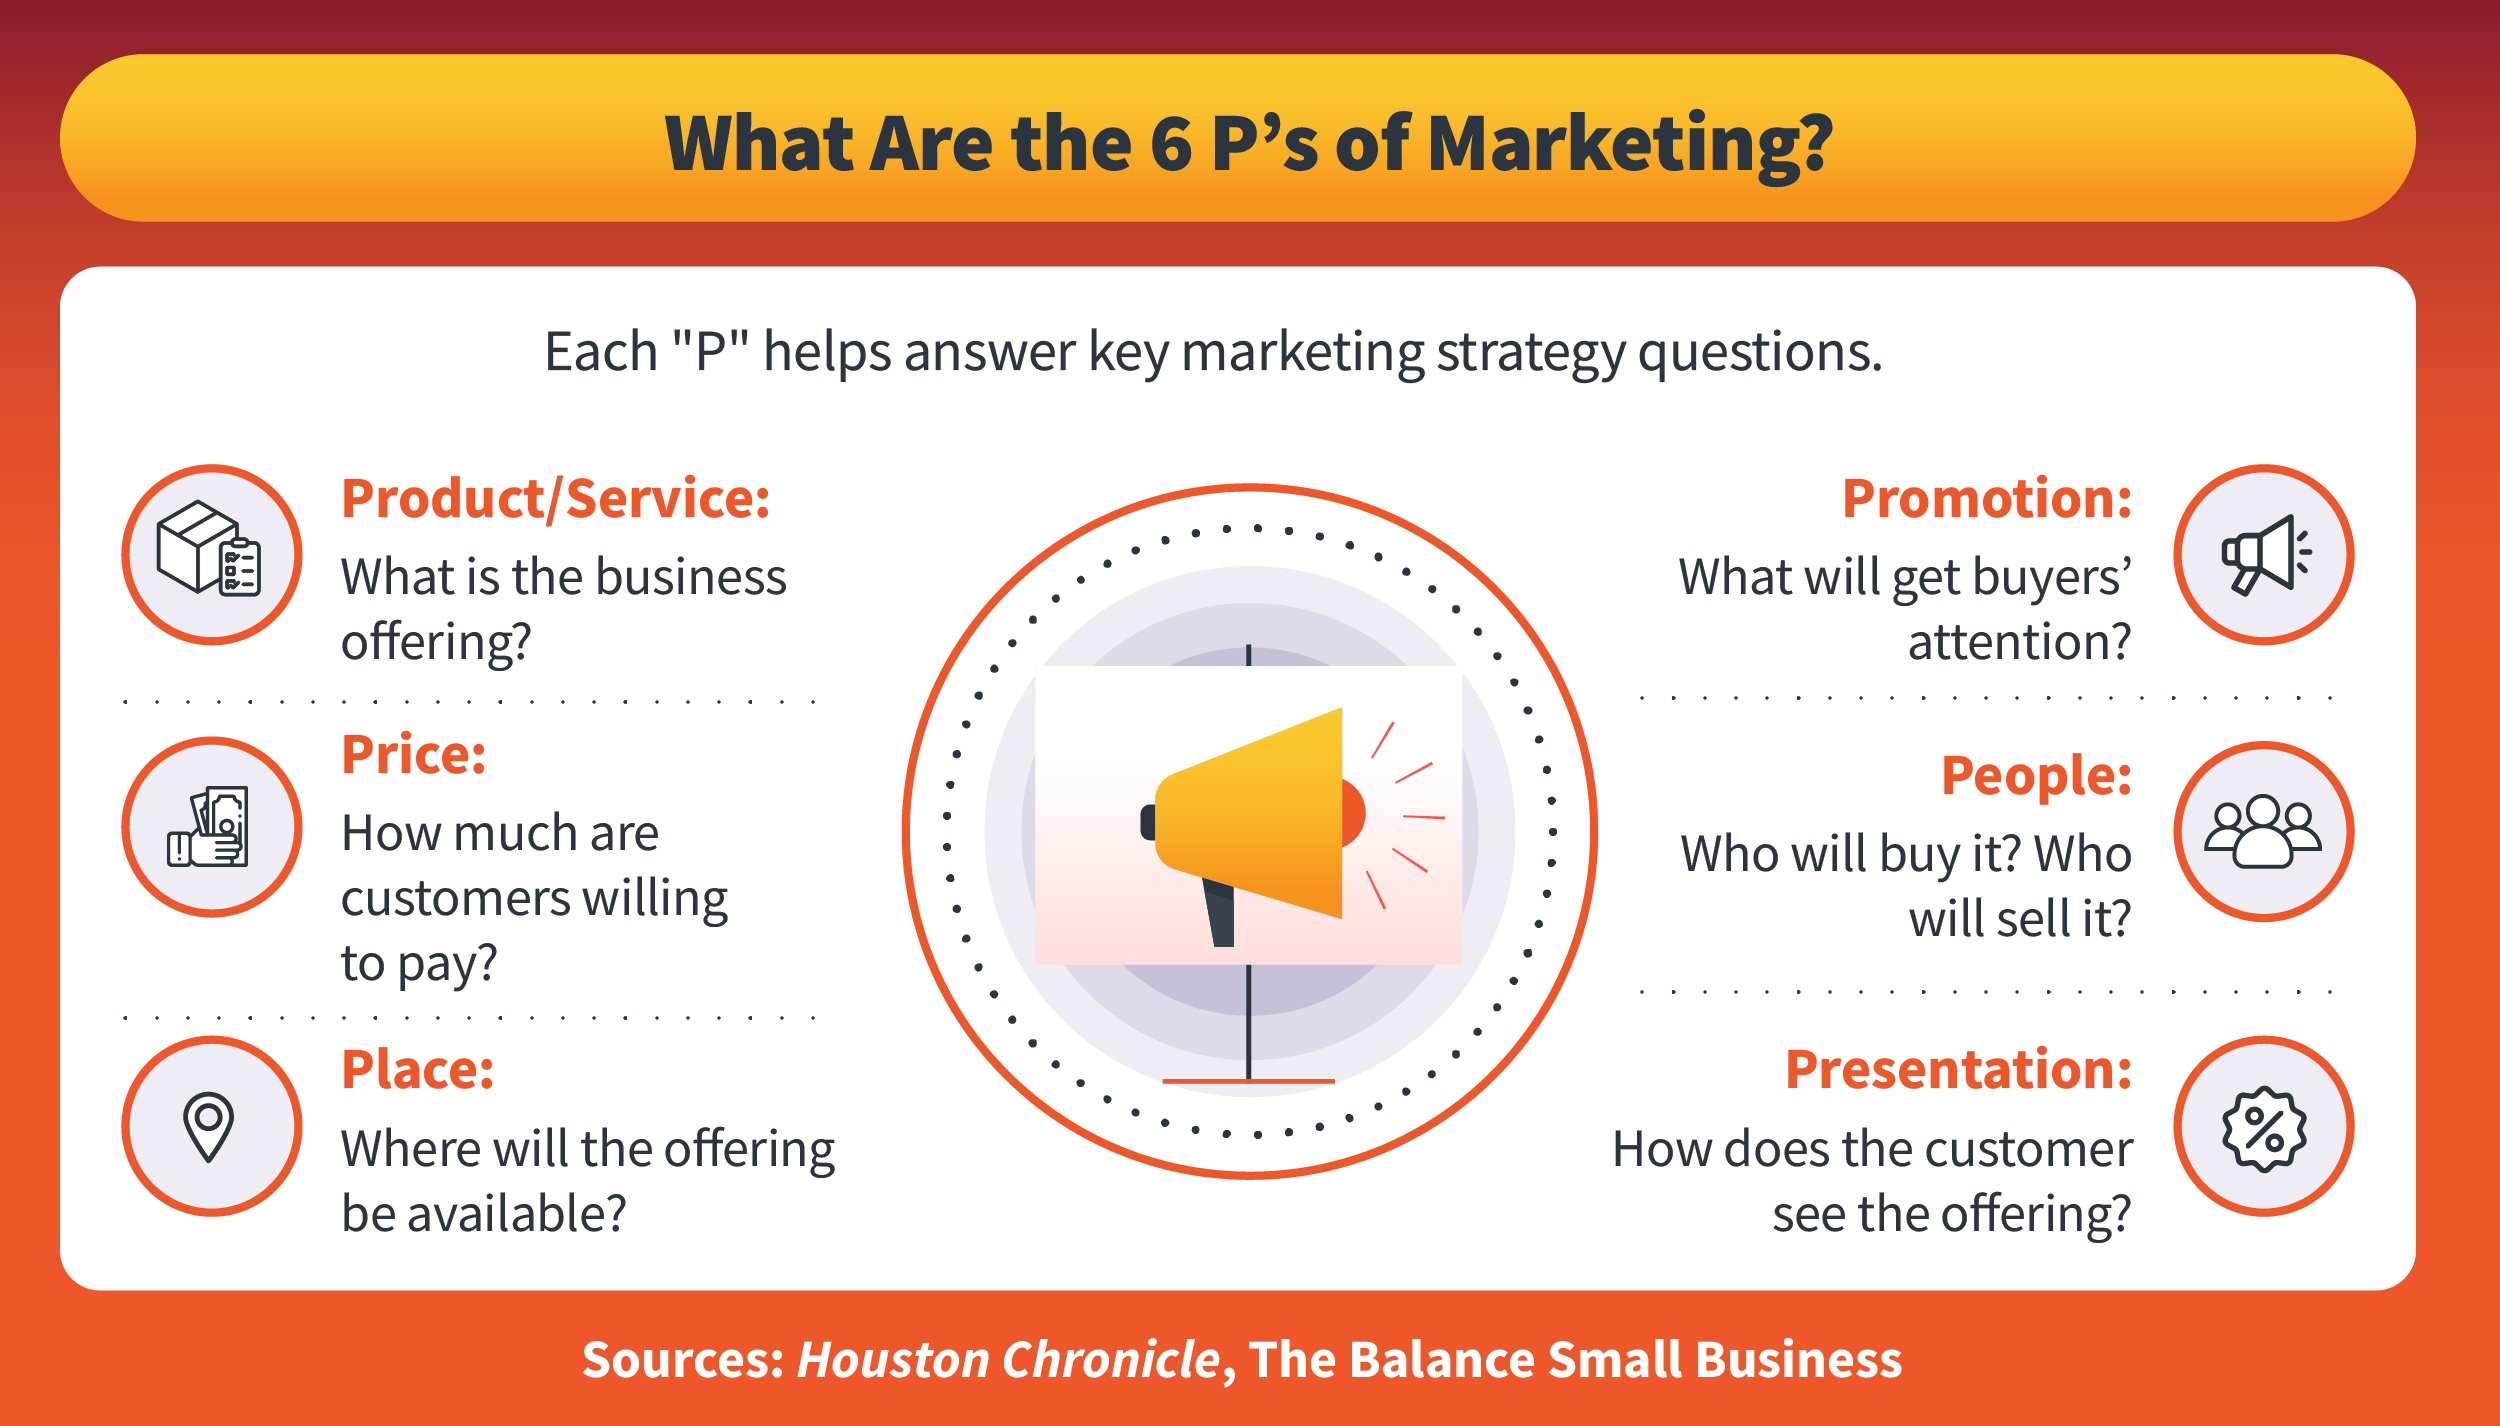 The 6P's of marketing defined.